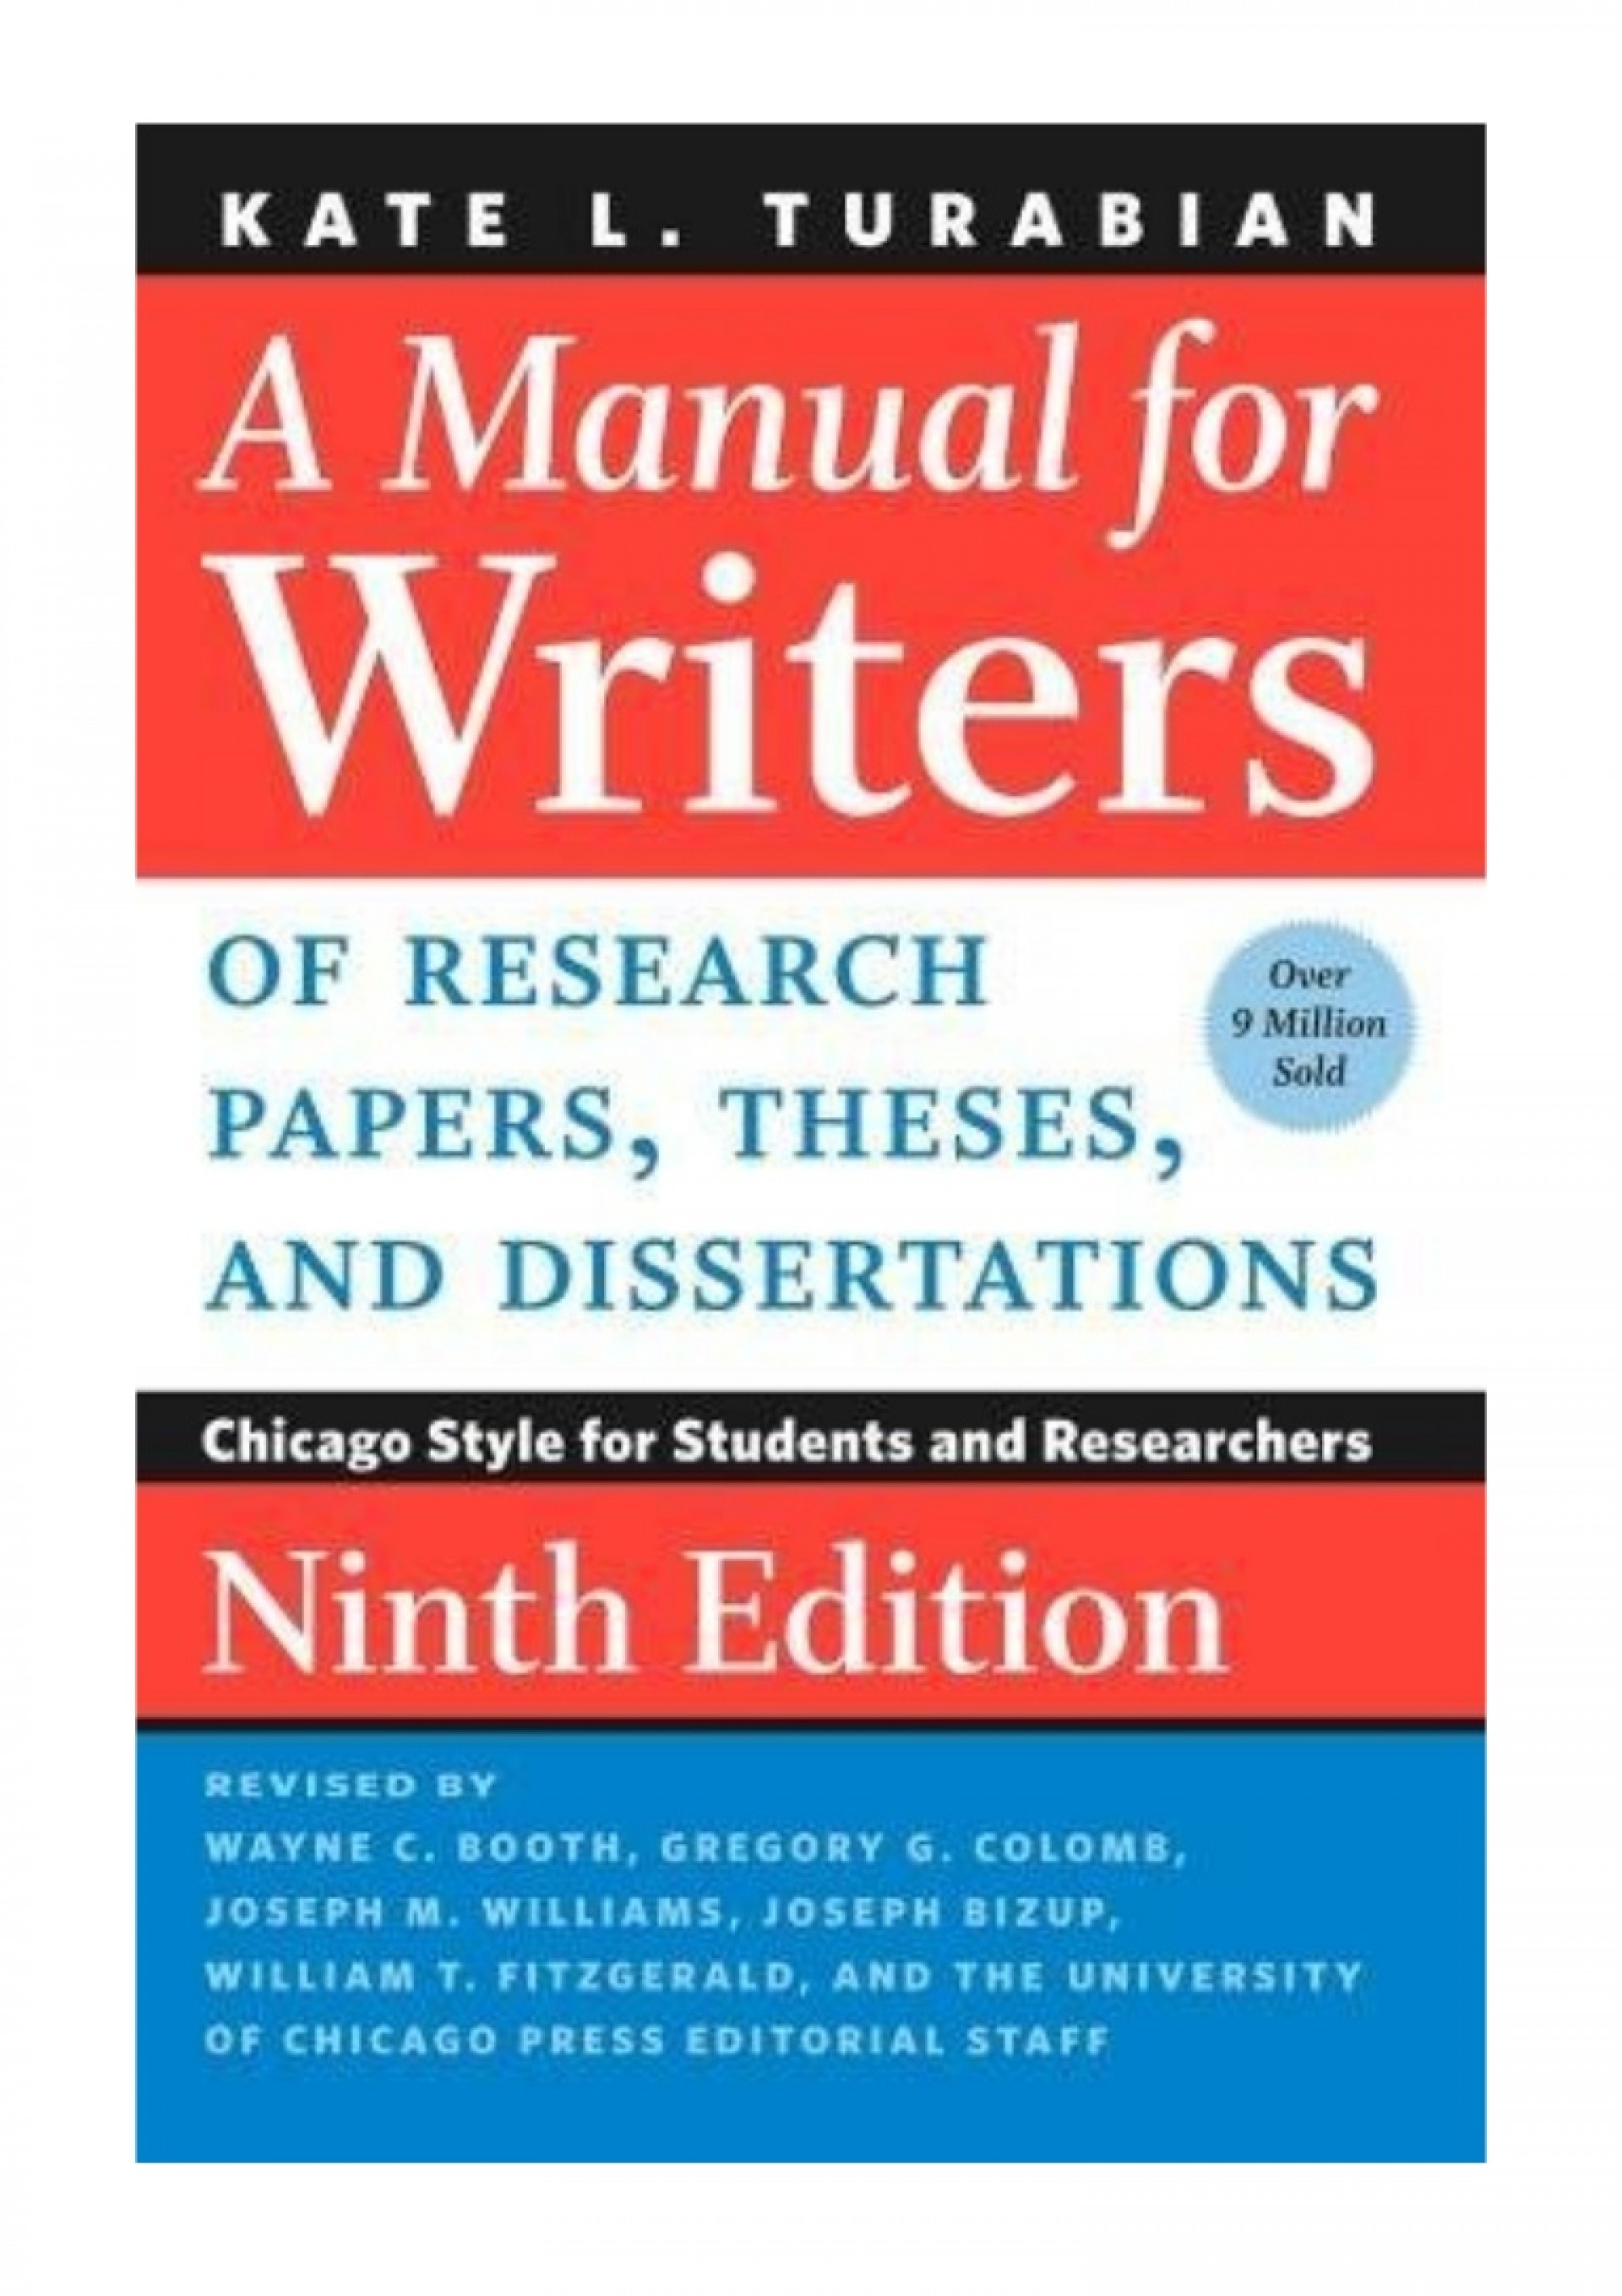 010 Manual For Writers Of Research Papers Theses And Dissertations Paper 022643057x Amanualforwritersofresearchpapersthesesanddissertationsnintheditionbykatel Thumbnail Magnificent A Amazon 9th Edition 8th 13 1920